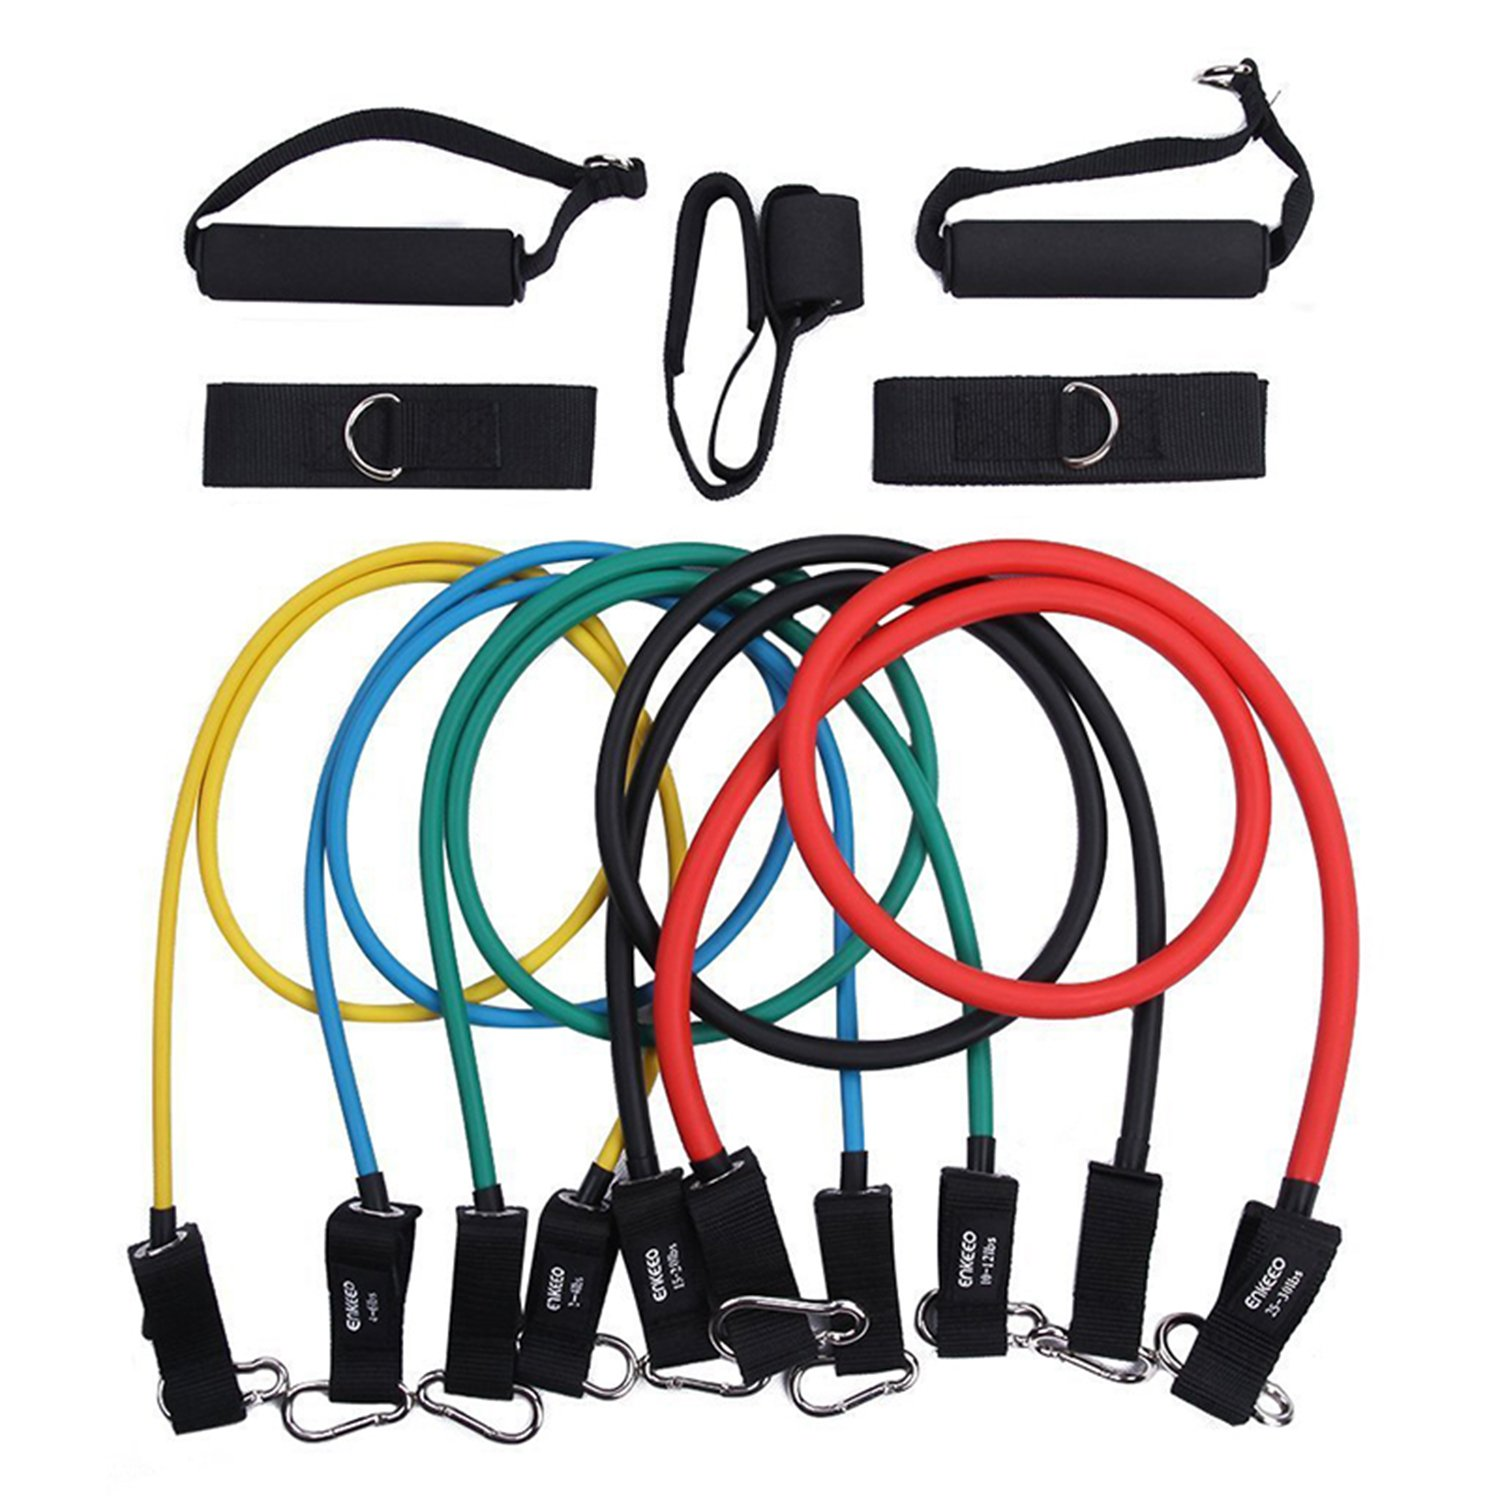 Kuspert 11pc Resistance Band Set with Door Anchor, Handles, Ankle Straps and Exercise Chart, Stackable Up To 80lbs